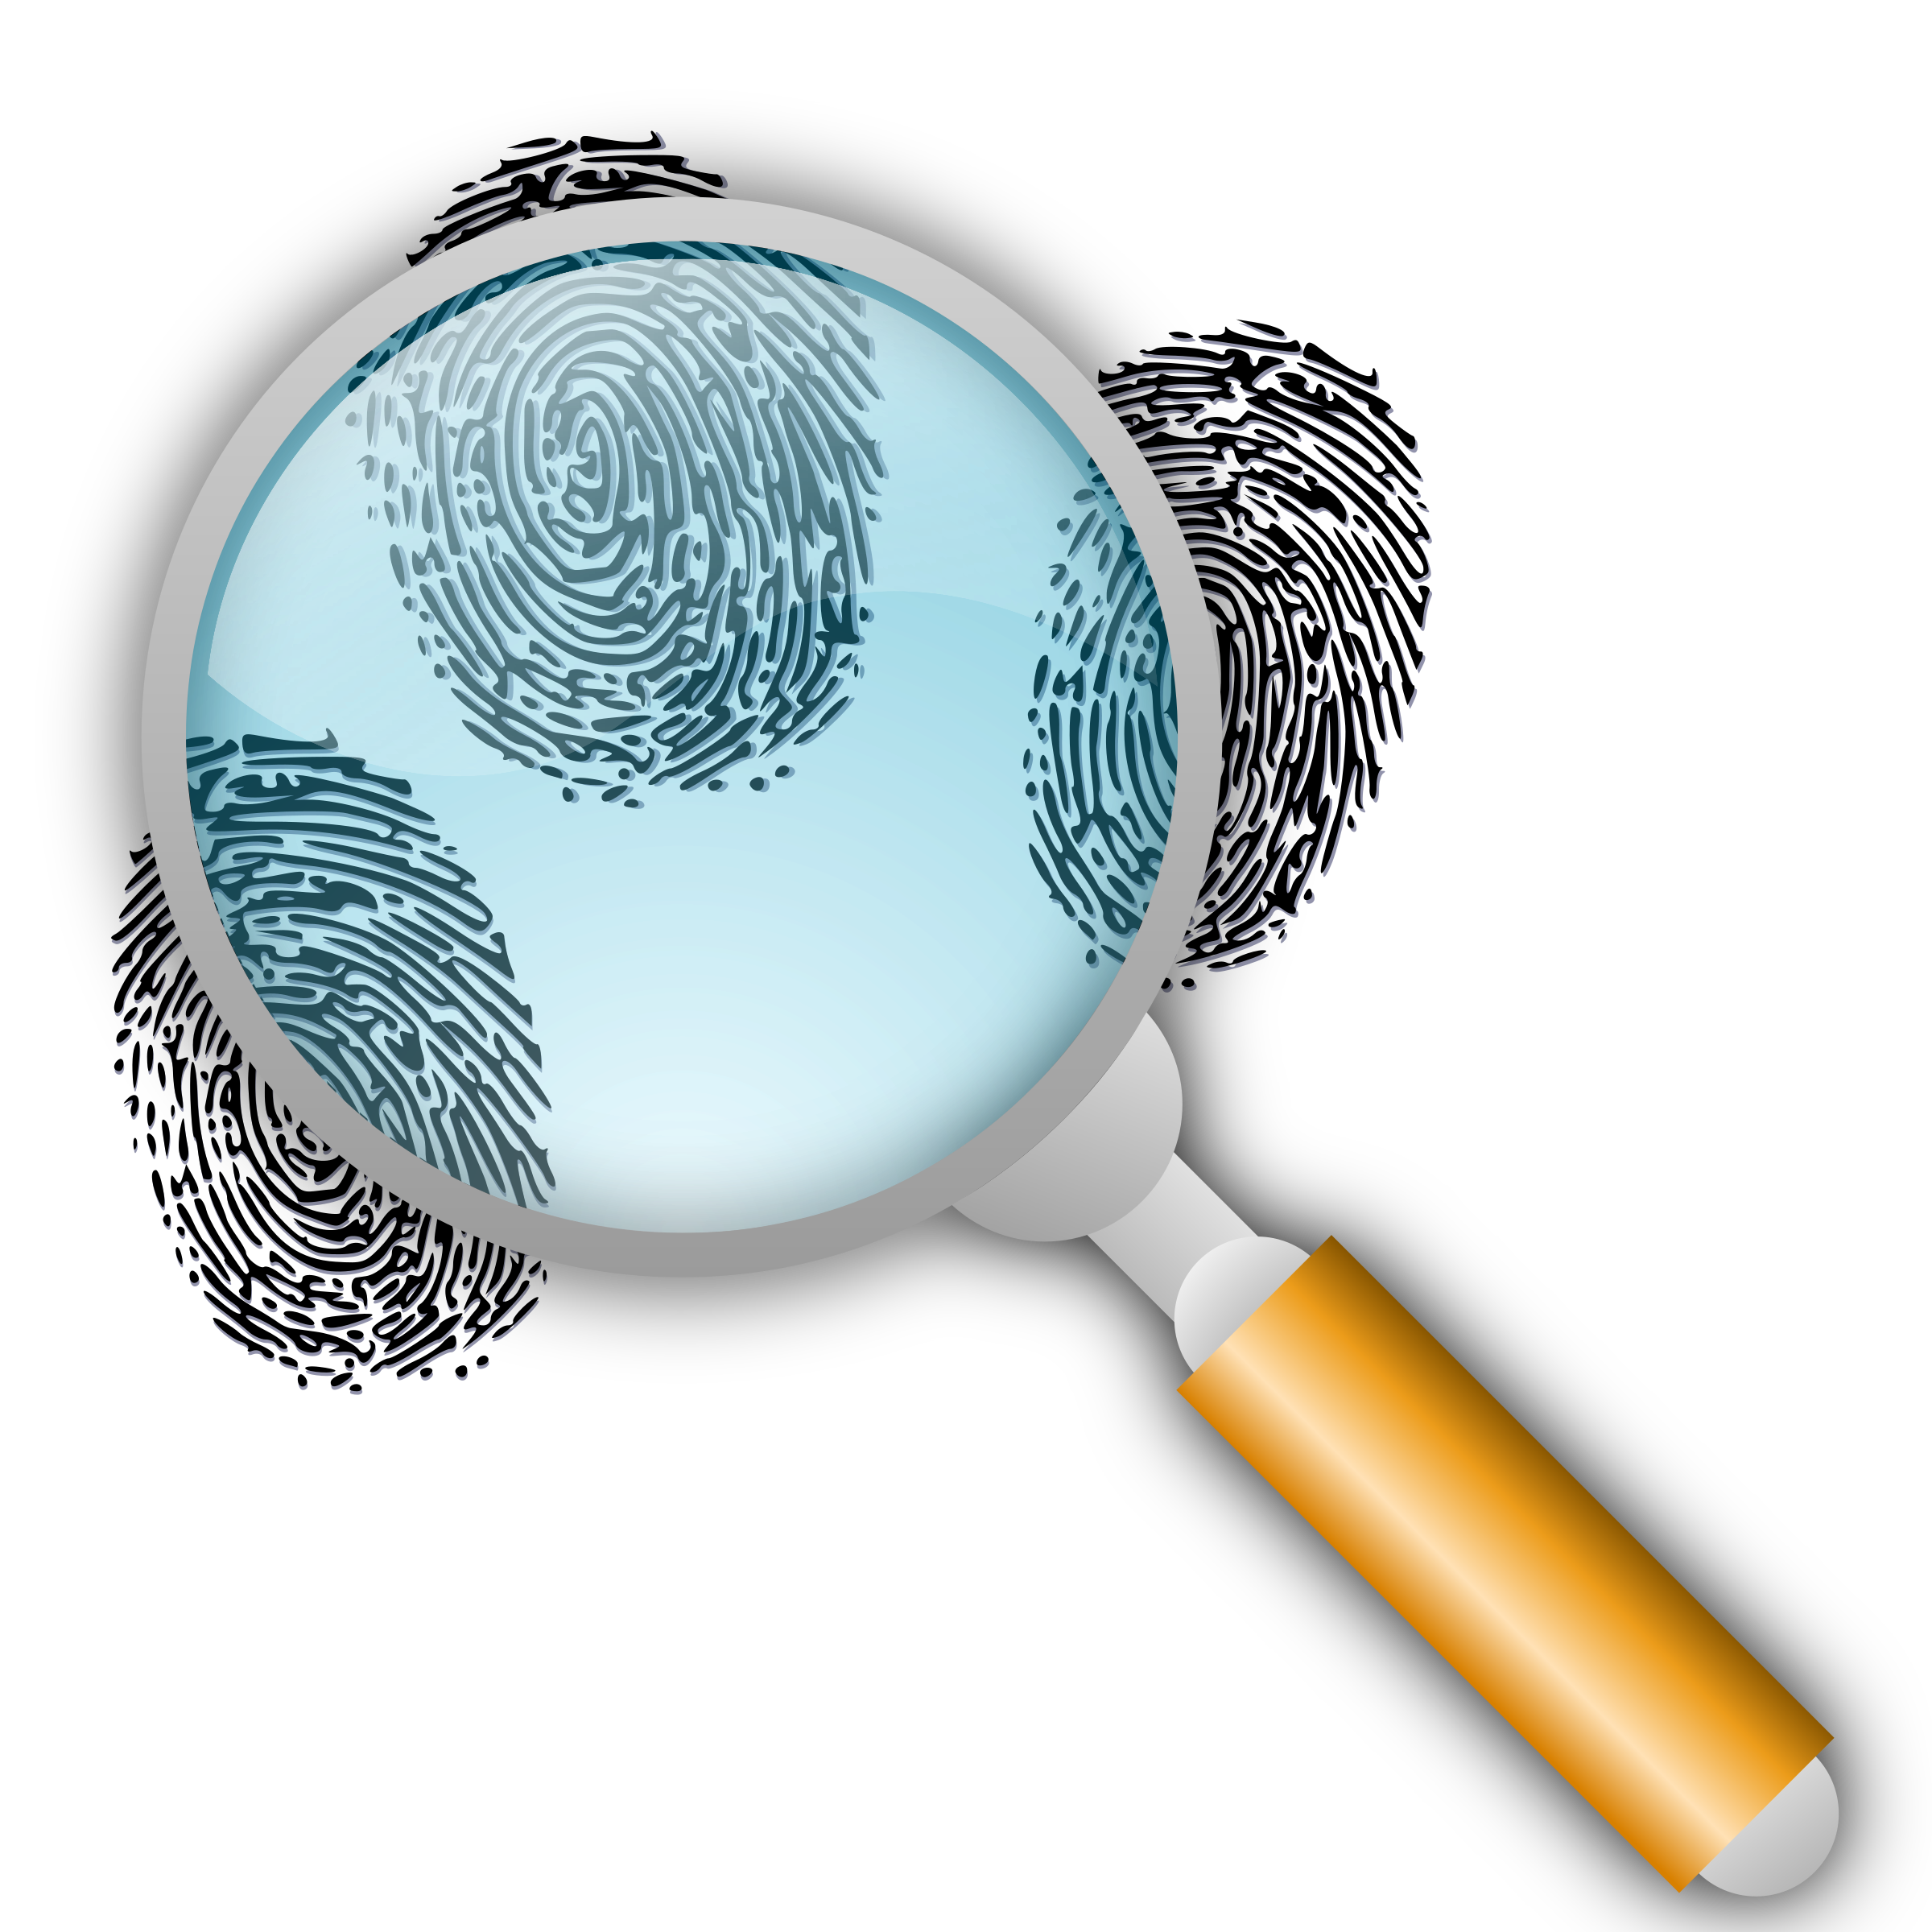 Fingerprint Search with Slight Magnification by eady